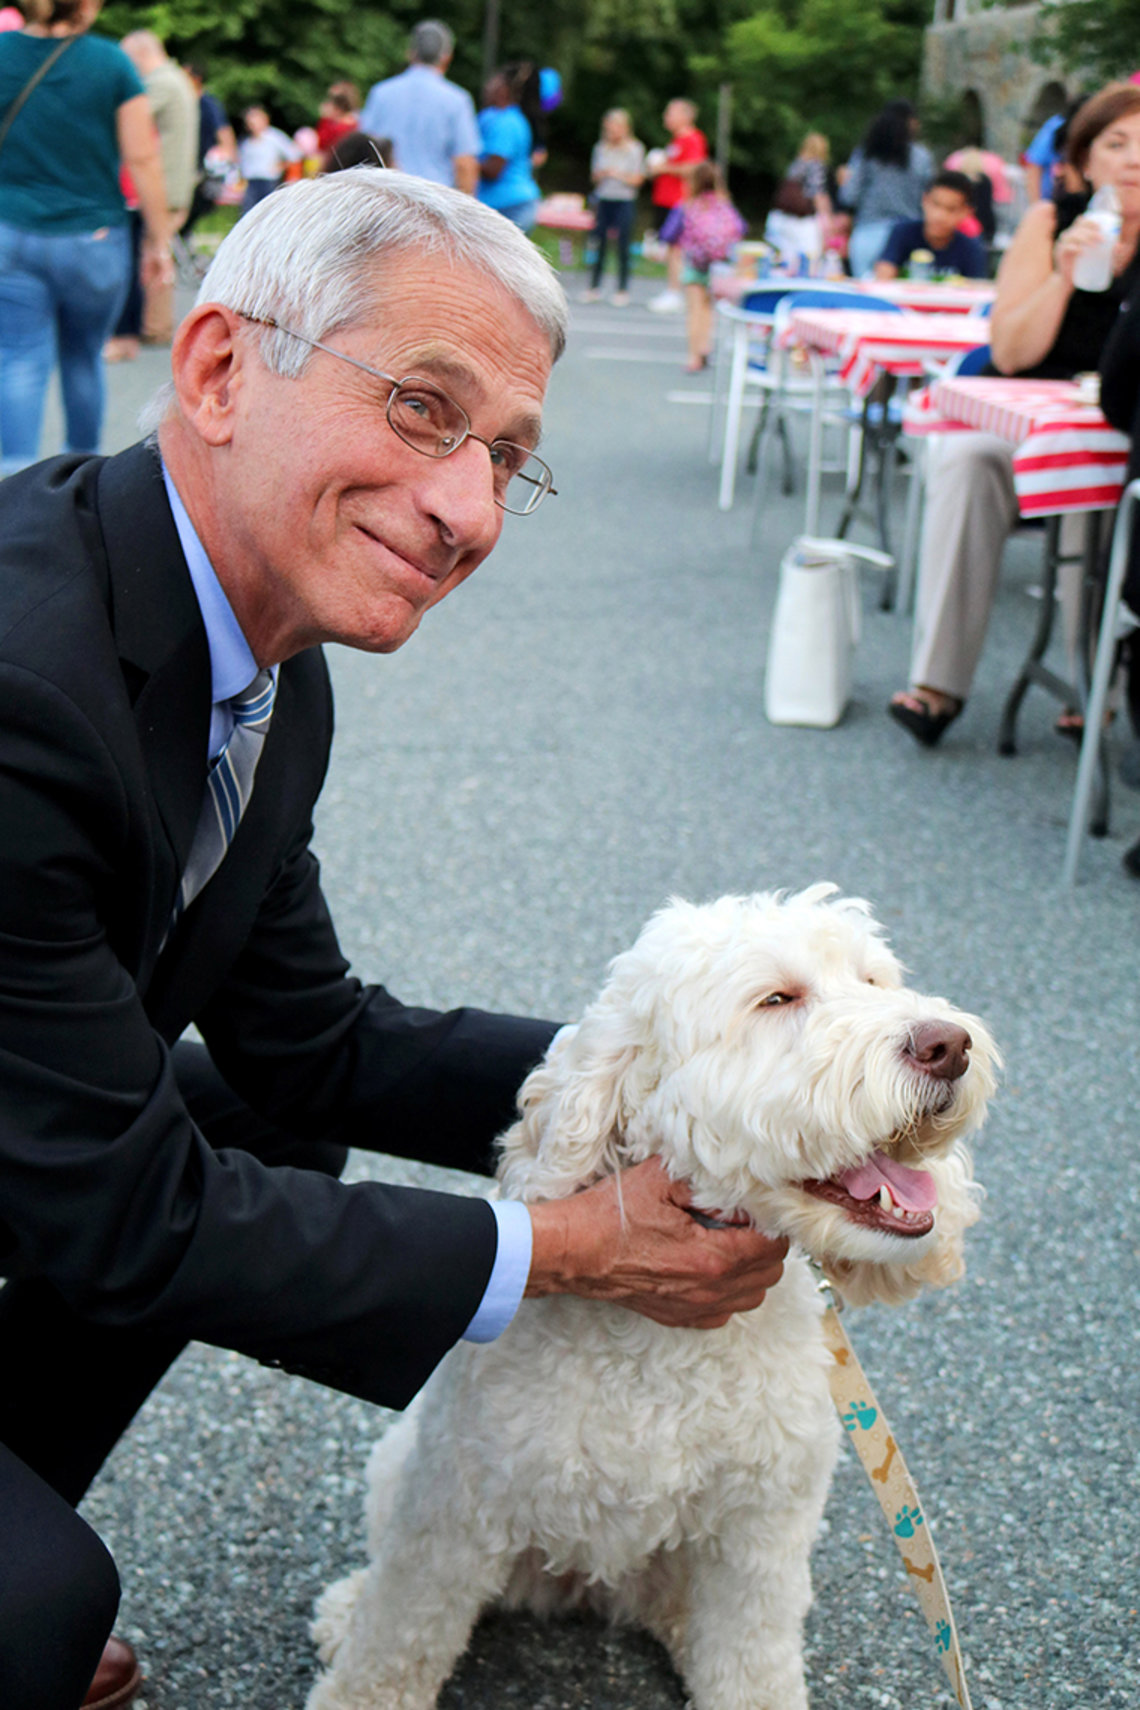 Dr. Anthony Fauci poses with Zilly, the Children's Inn therapy dog.